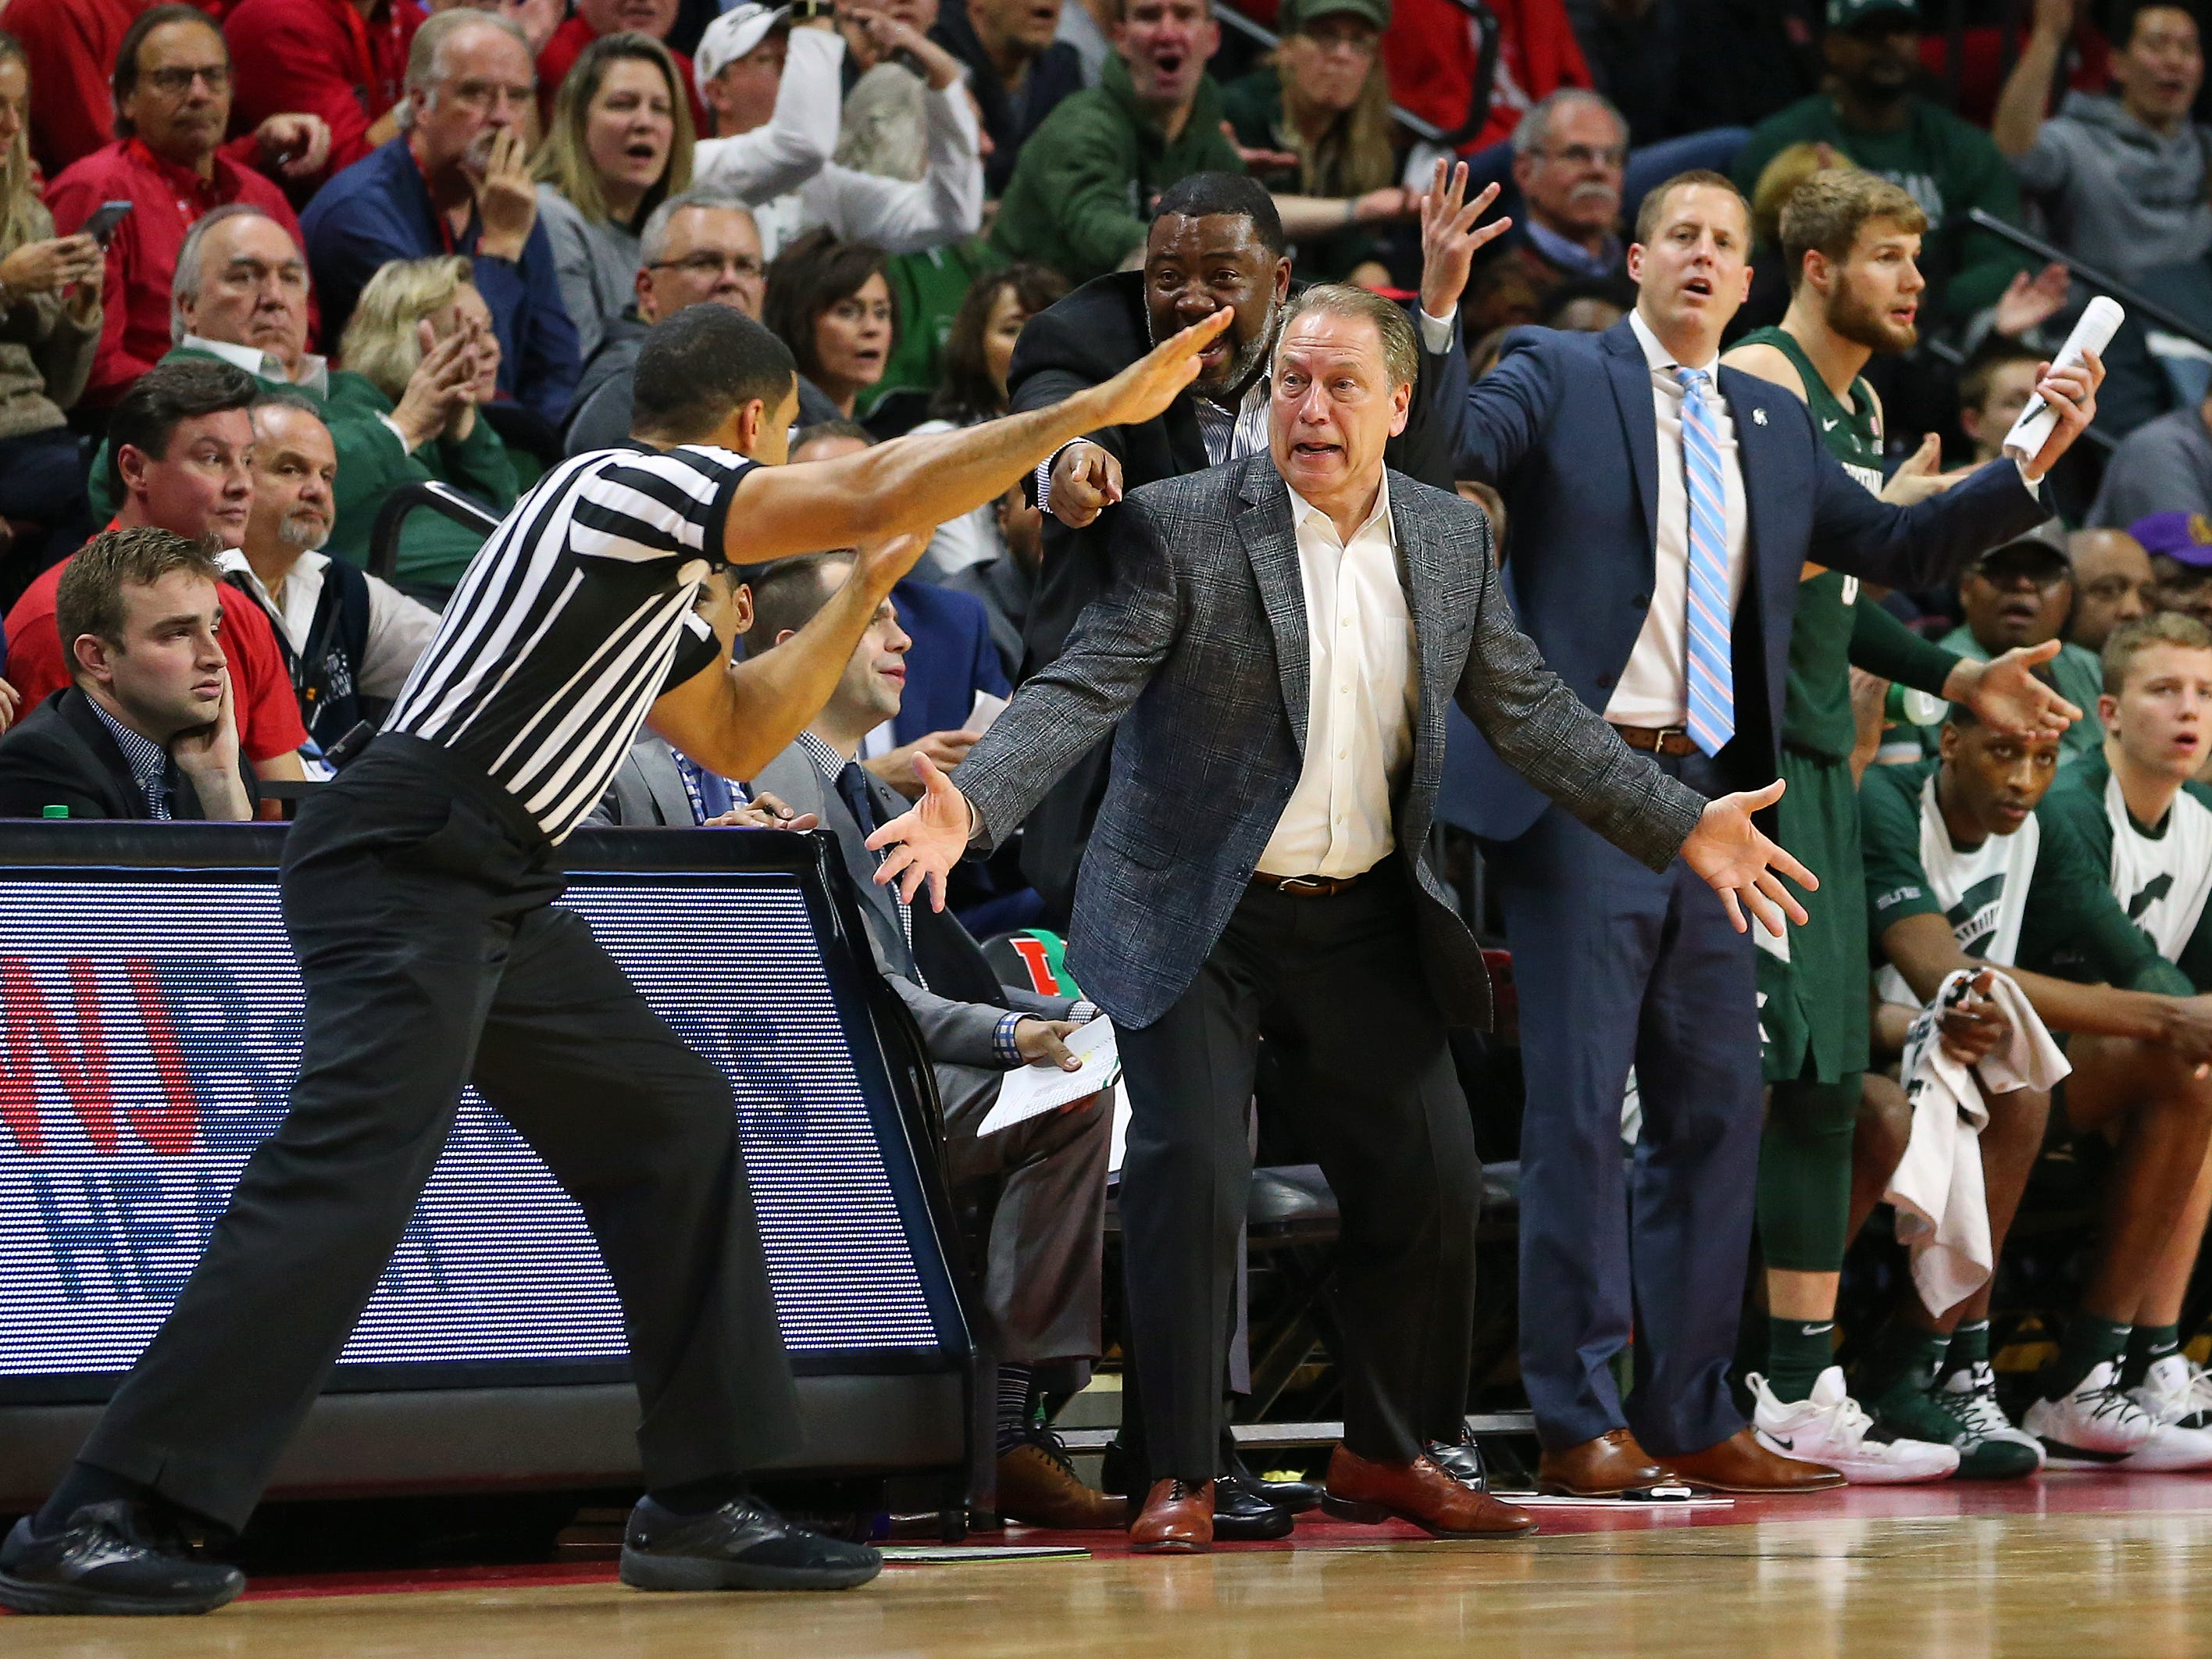 Head coach Tom Izzo of the Michigan State Spartans reacts to a call during the second half of a college basketball game against the Rutgers Scarlet Knights at the Rutgers Athletic Center on November 30, 2018 in Piscataway, New Jersey. Michigan State defeated Rutgers 78-67.